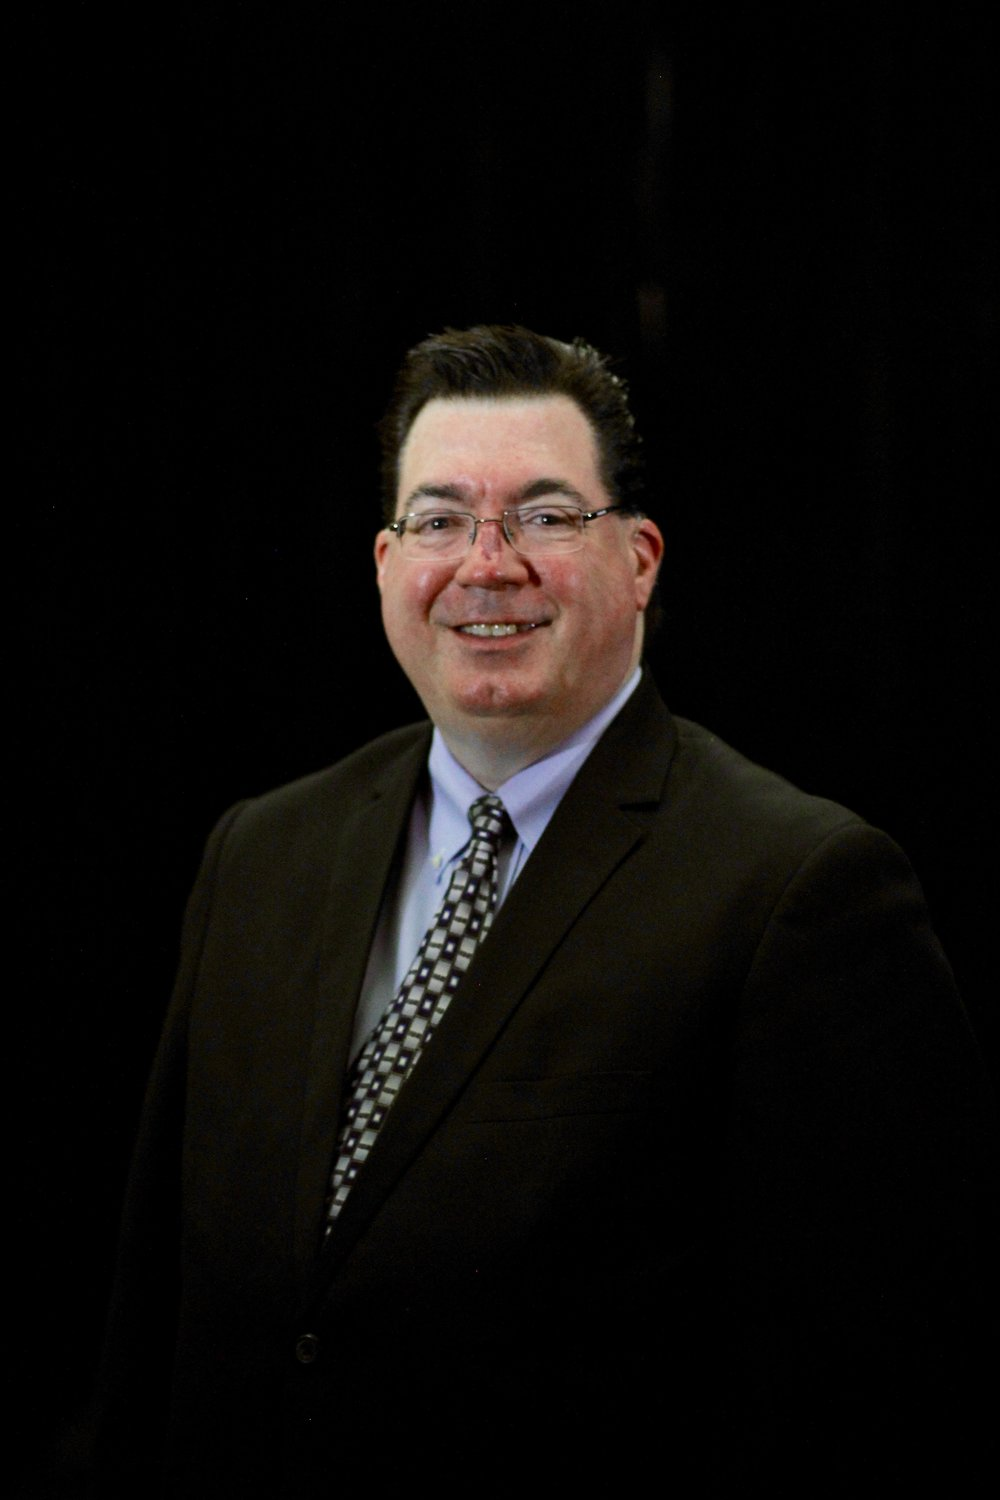 Ron Pettit - Ron Pettit is Director, Disability Inclusion & ADA Compliance at Royal Caribbean Cruises Ltd.  Ron's passion is to enable guests with disabilities to have a great cruise vacation experience and make Royal Caribbean a great place to work for employees with disabilities. He is responsible for the accessible guest experience and product development as well as Americans with Disabilities Act (ADA) compliance for three global brands – Royal Caribbean International, Celebrity Cruises and Azamara Club Cruises.  He leads our Access and Accessible Shore Excursions Departments.  In addition, Ron is:Founding Chair of our new Disability Employee Resource Group, now called Royal Organization for Abilities Resources (ROAR); a group of over 75 employees with disabilities and their allies in South Florida, Wichita, KS, and Springfield, OR.President of the Board of Directors of the South Florida Business Leadership Network (a local affiliate of the national USBLN), a business to business organization promoting disability inclusion in the workplace, marketplace and supply chain.Advisor to the Center of Independent Living of Broward's Leadership Program, designed to help people with disabilities develop leadership skills to become community and disability advocates.Ron received a Bachelors of Arts degree in Communication Arts and Sciences from Bridgewater State University in Bridgewater, Massachusetts.